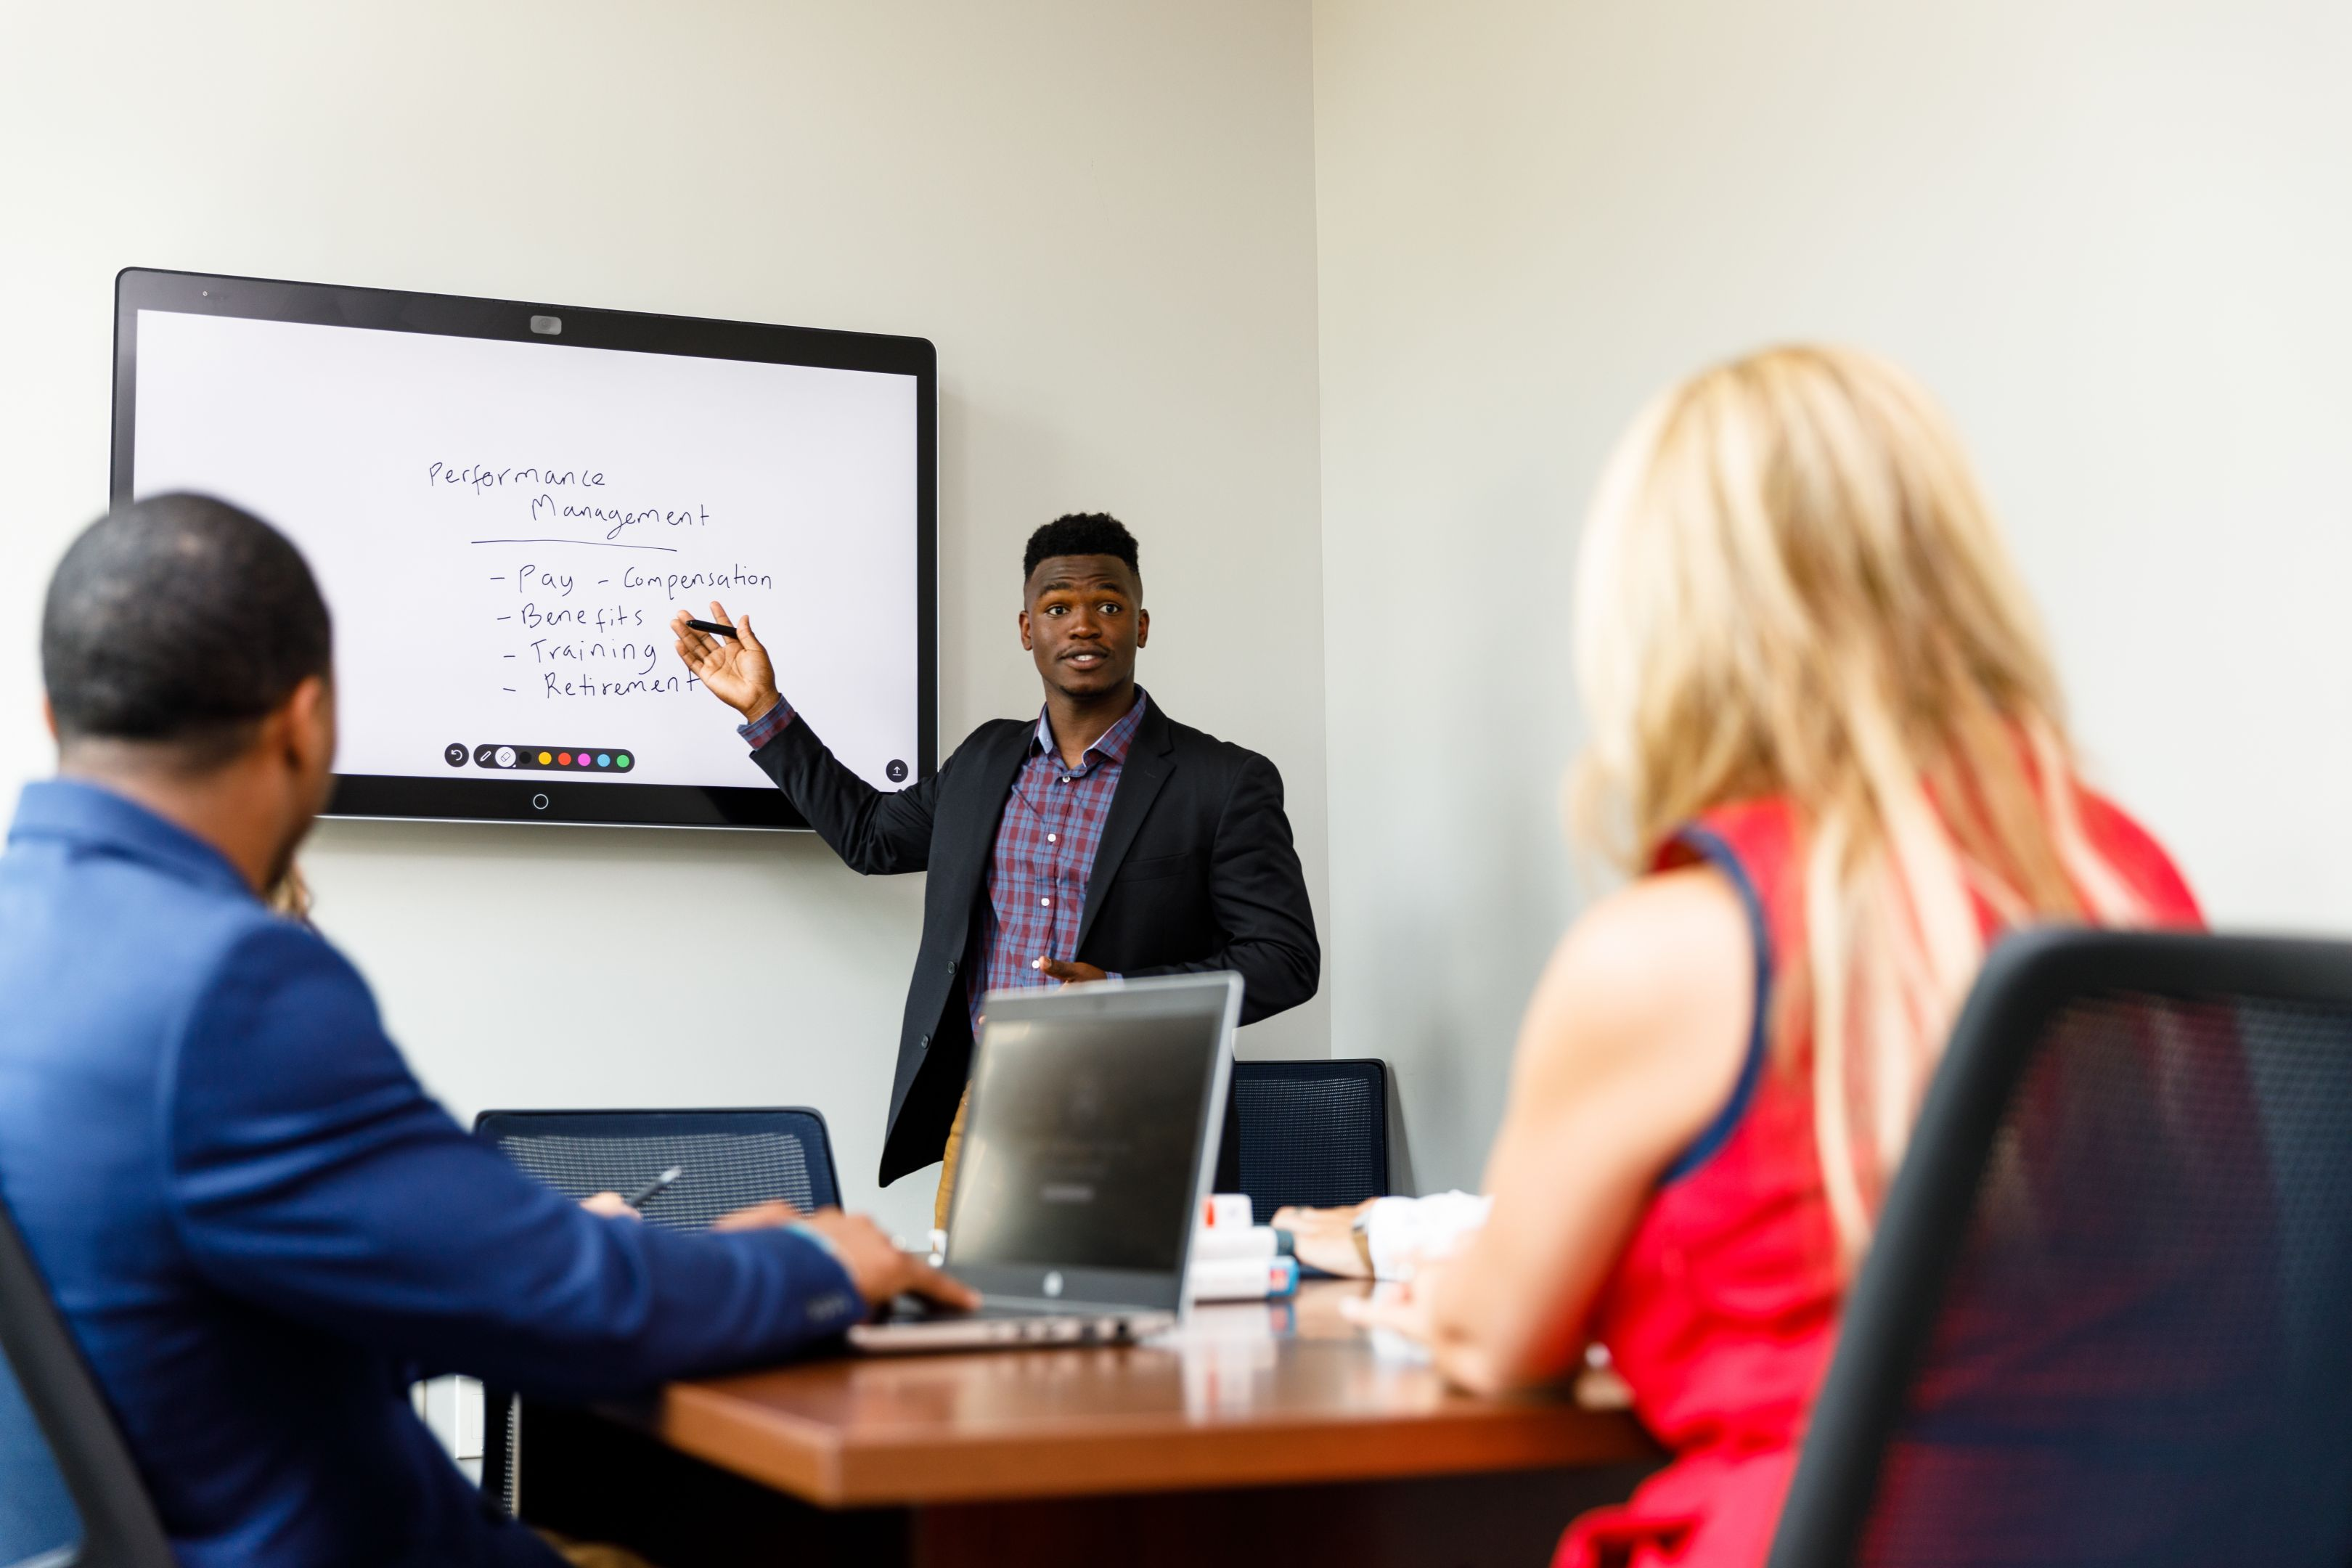 Master Of Business Administration 45 Hour Online Degree Program At Liberty University